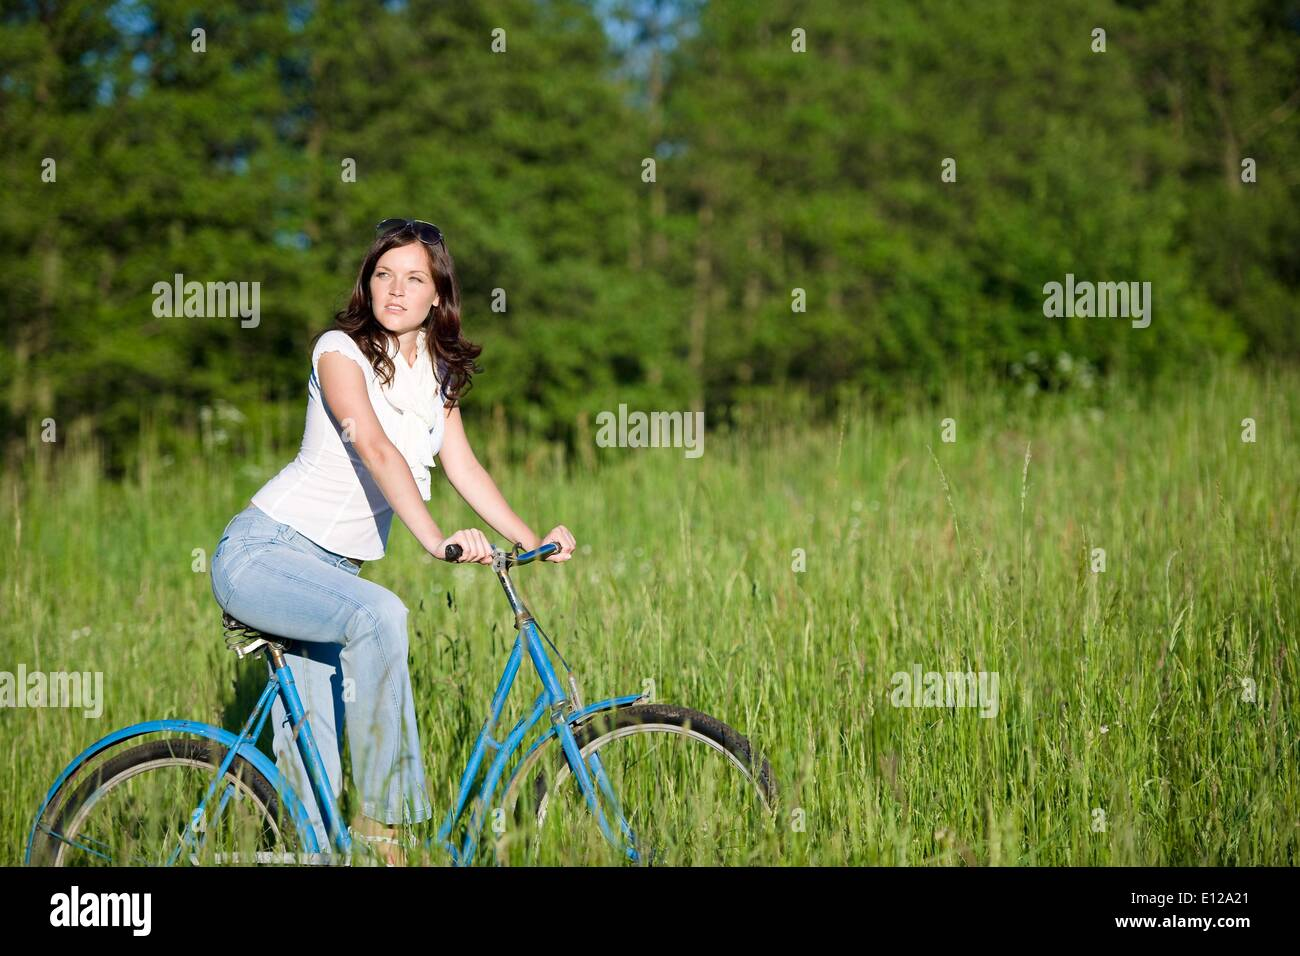 Jun. 05, 2010 - June 5, 2010 - Woman with old-fashioned bike in summer meadow on sunny day - Stock Image